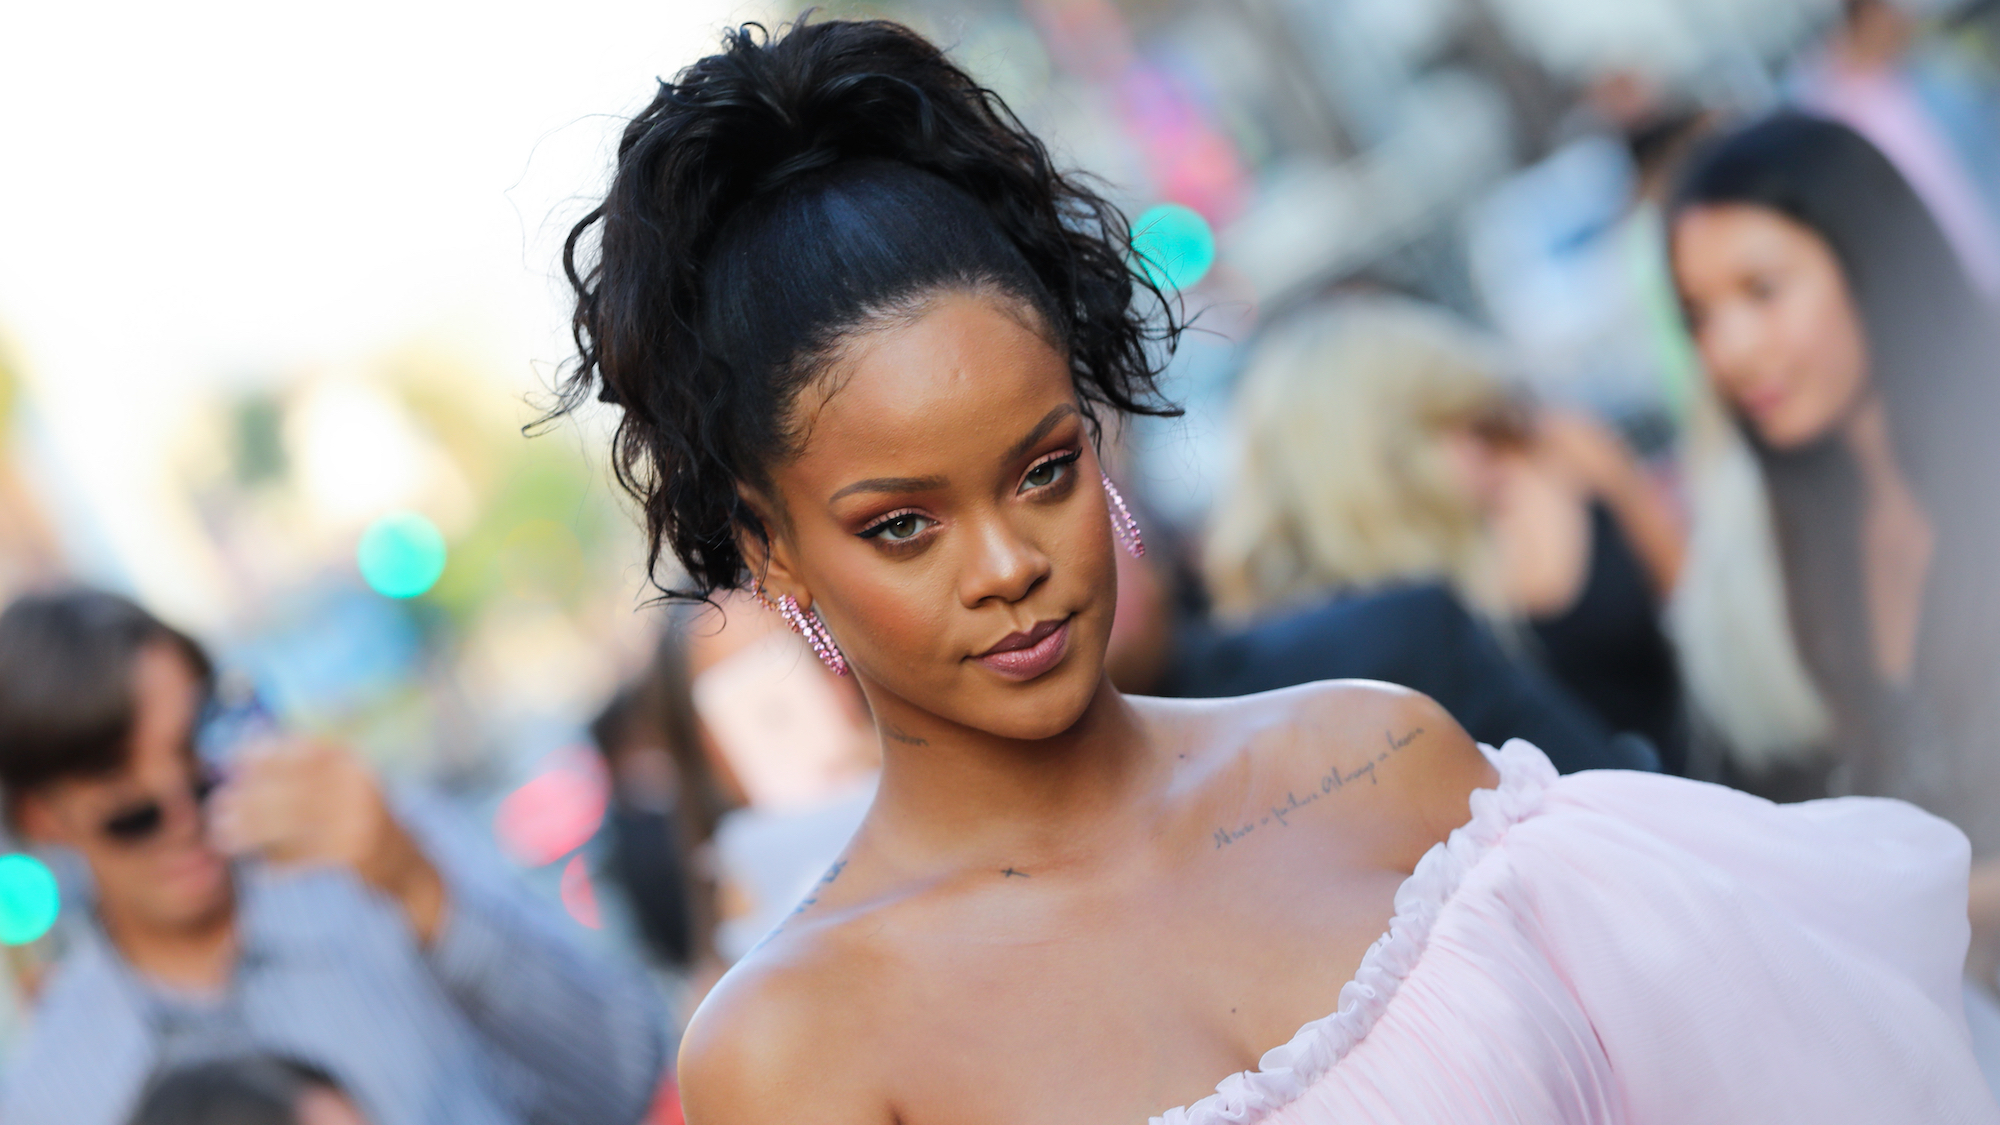 Best Hairstyles For Oval Faces 2019 According To Hair Experts Intended For Fashionable Medium Hairstyles For Black Women With Oval Faces (View 5 of 20)